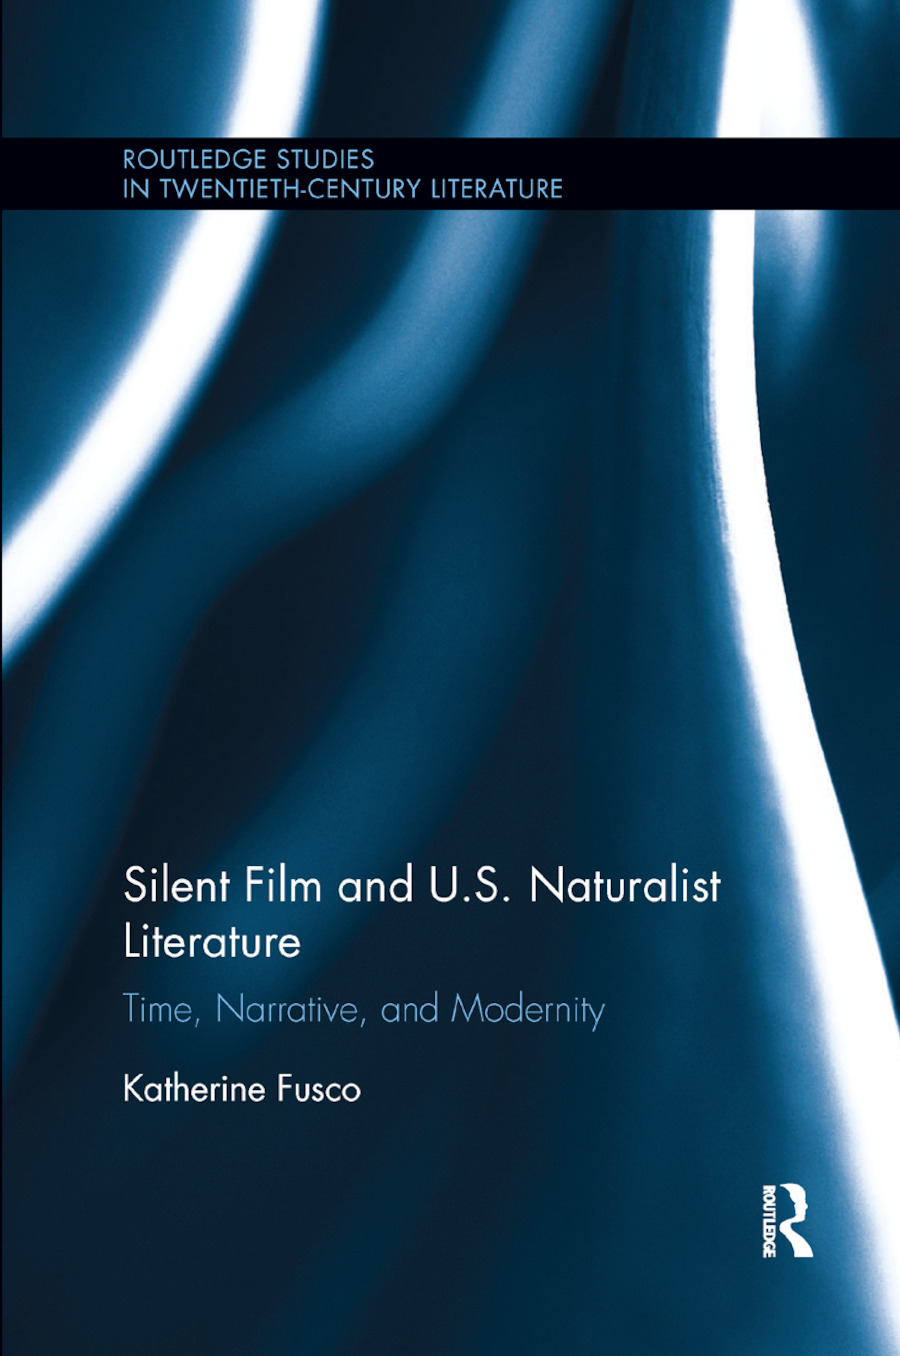 Silent Film and U.S. Naturalist Literature: Time, Narrative, and Modernity book cover